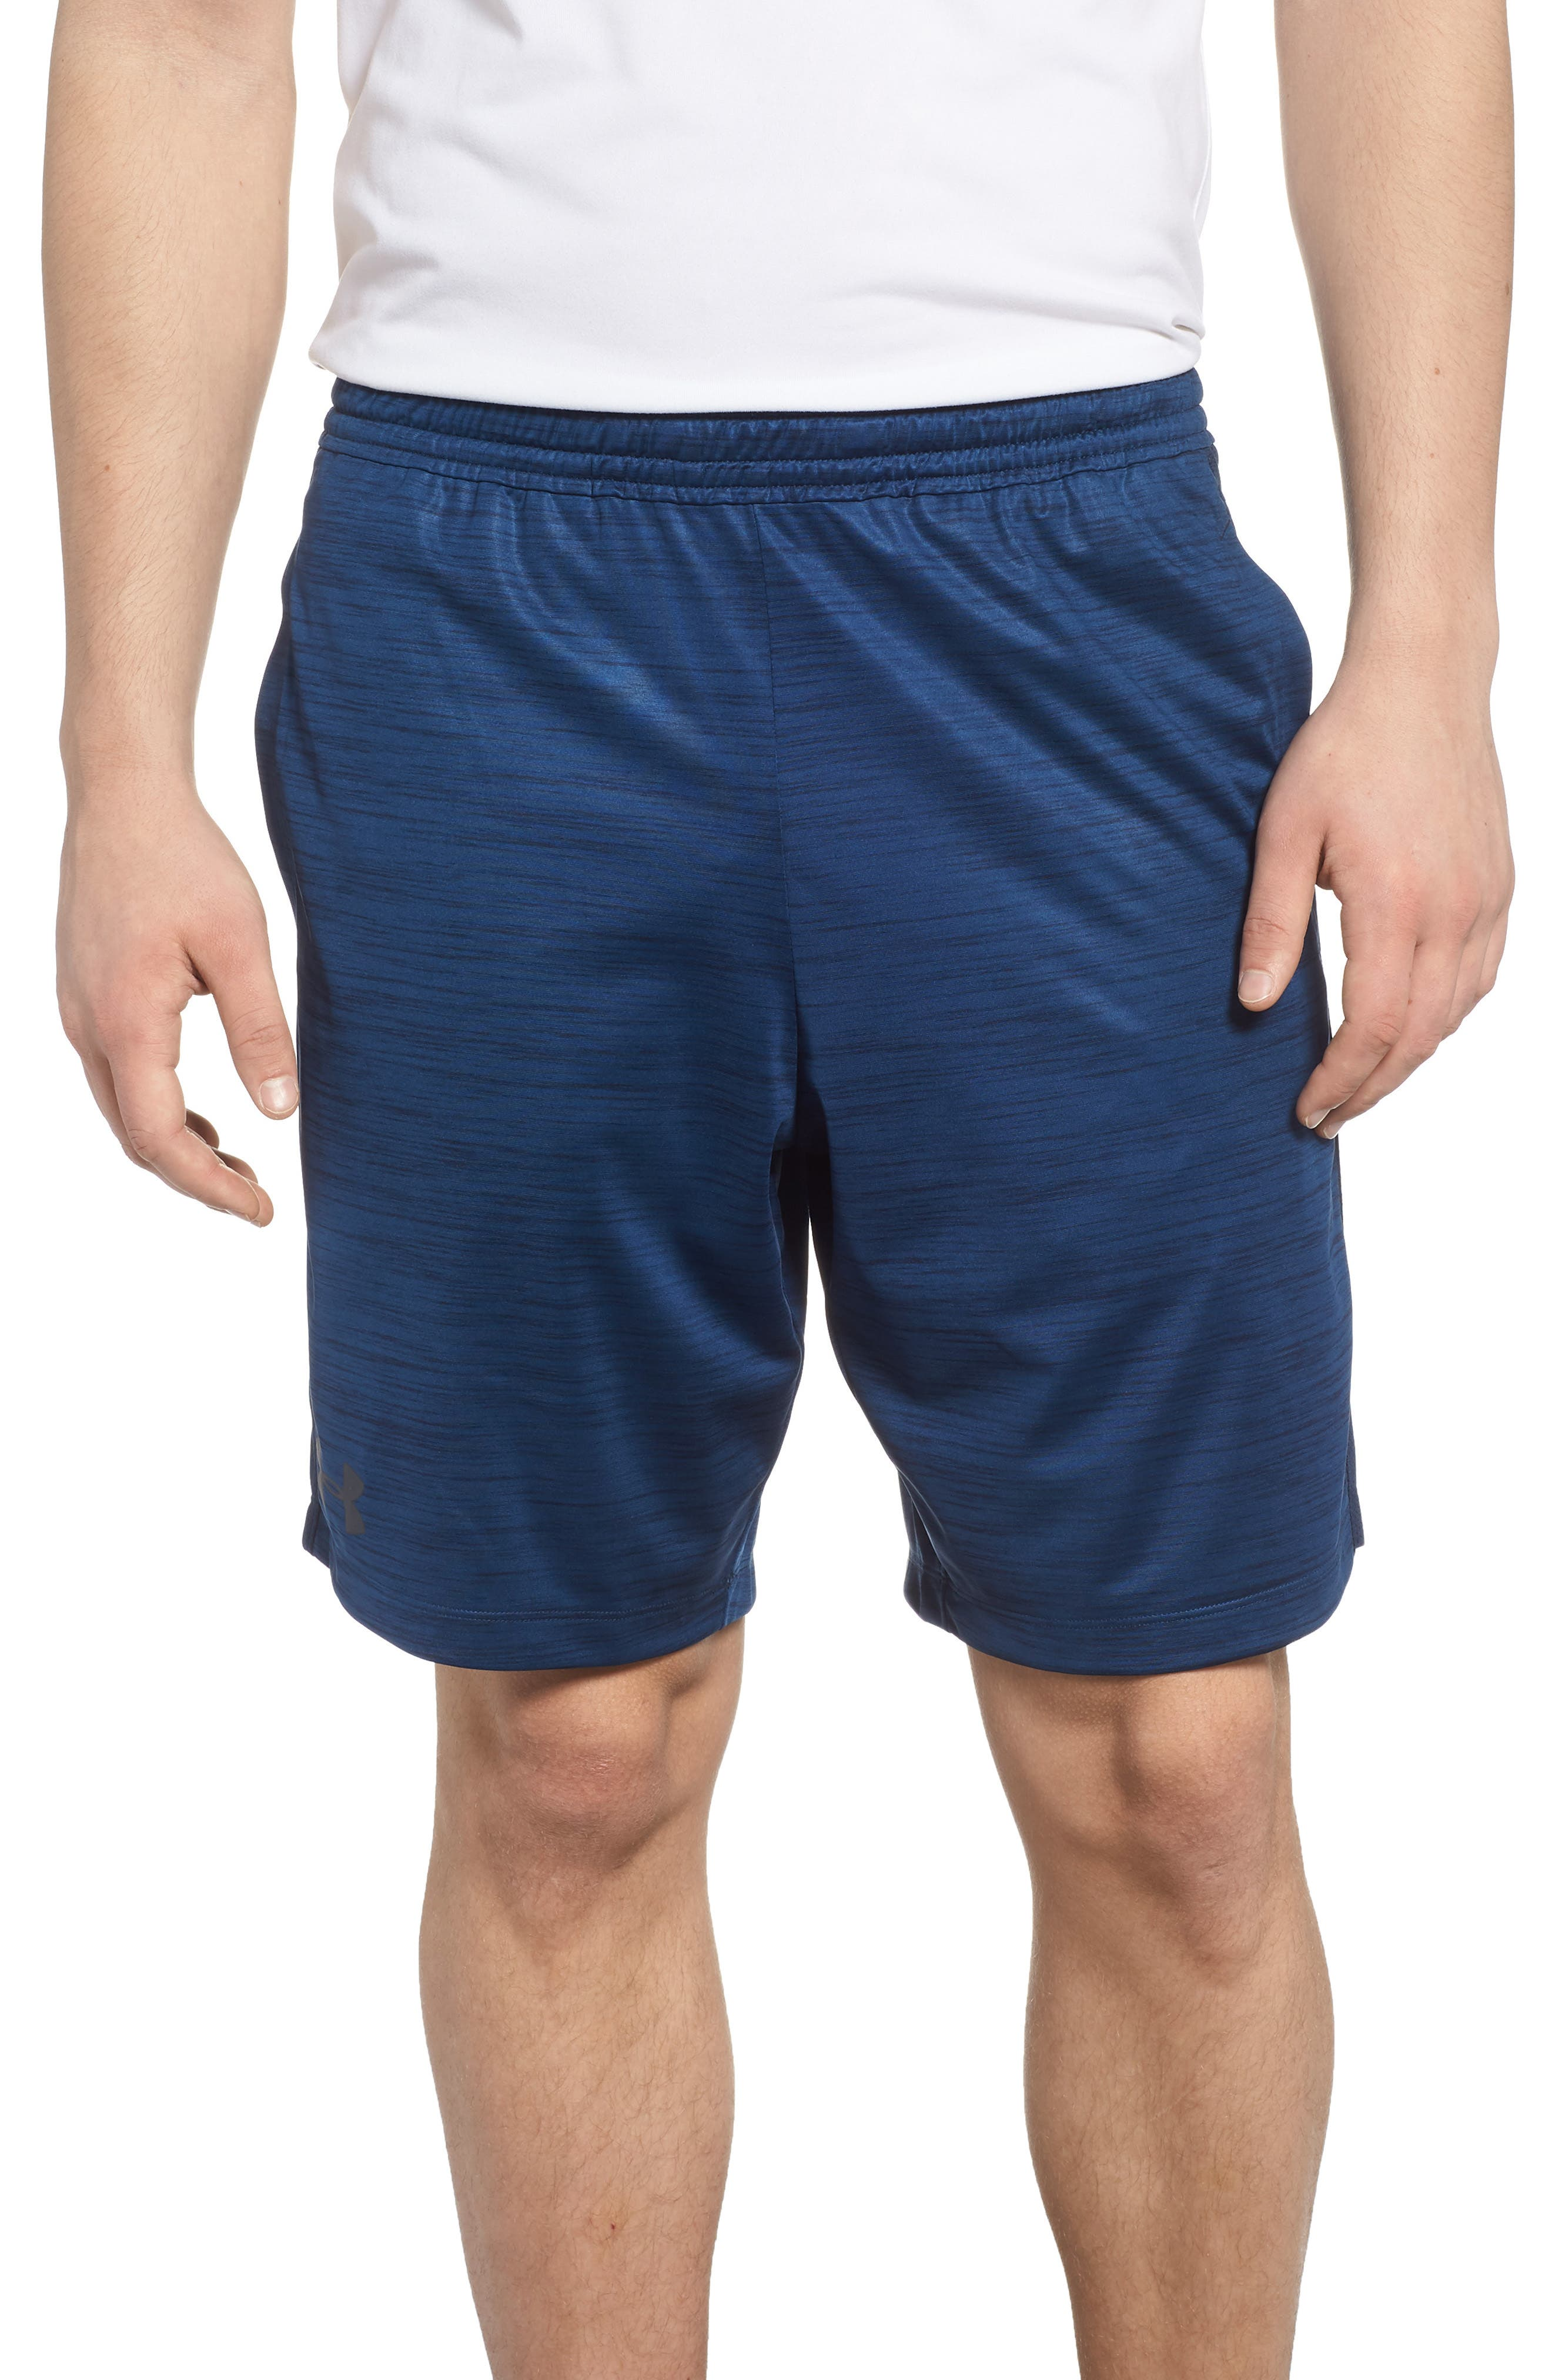 MK1 Twist Shorts,                         Main,                         color, Academy/ Stealth Greh